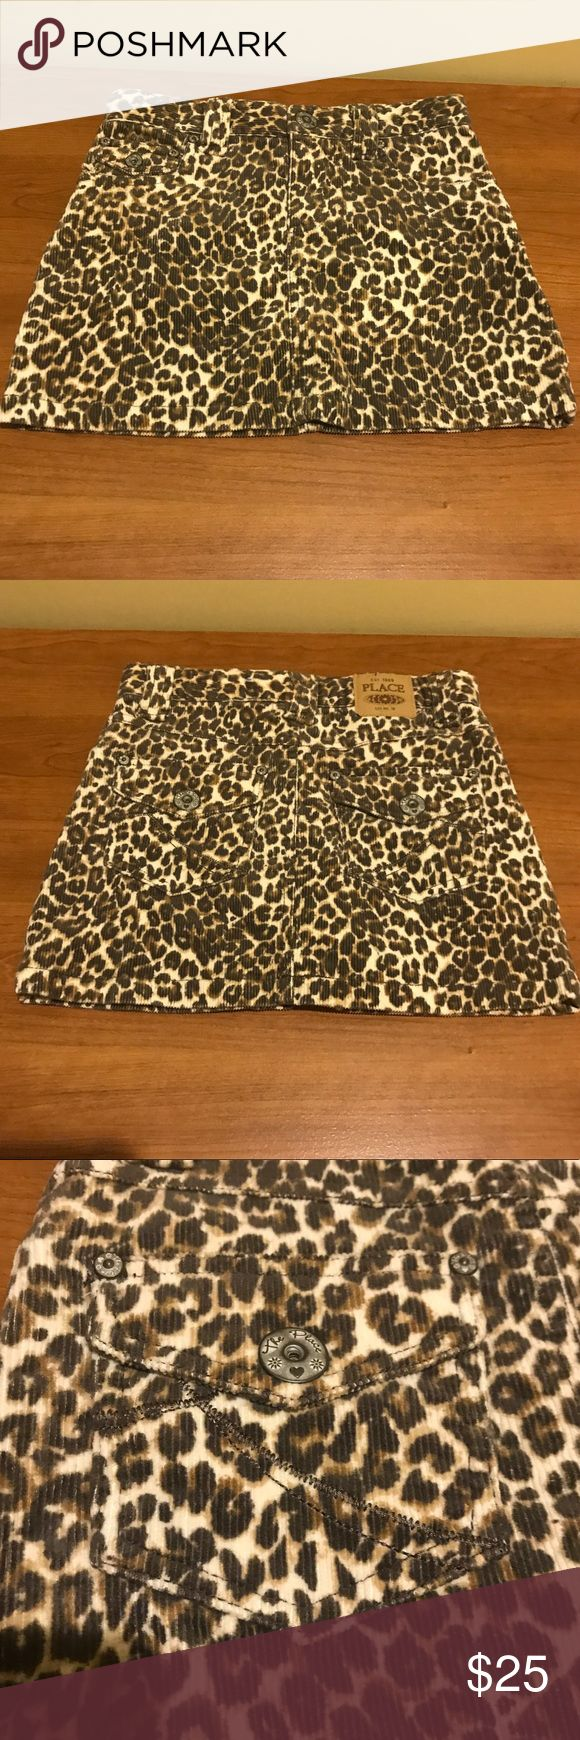 Children's place size 6x-7 cheetah skirt Size 6x-7 Cheetah skirt with spandex underneath. Worn but in very good condition. Pockets in front and back. (I recycle shipping materials, if you have a problem with that please contact me prior to purchase.) Children's Place Bottoms Skirts